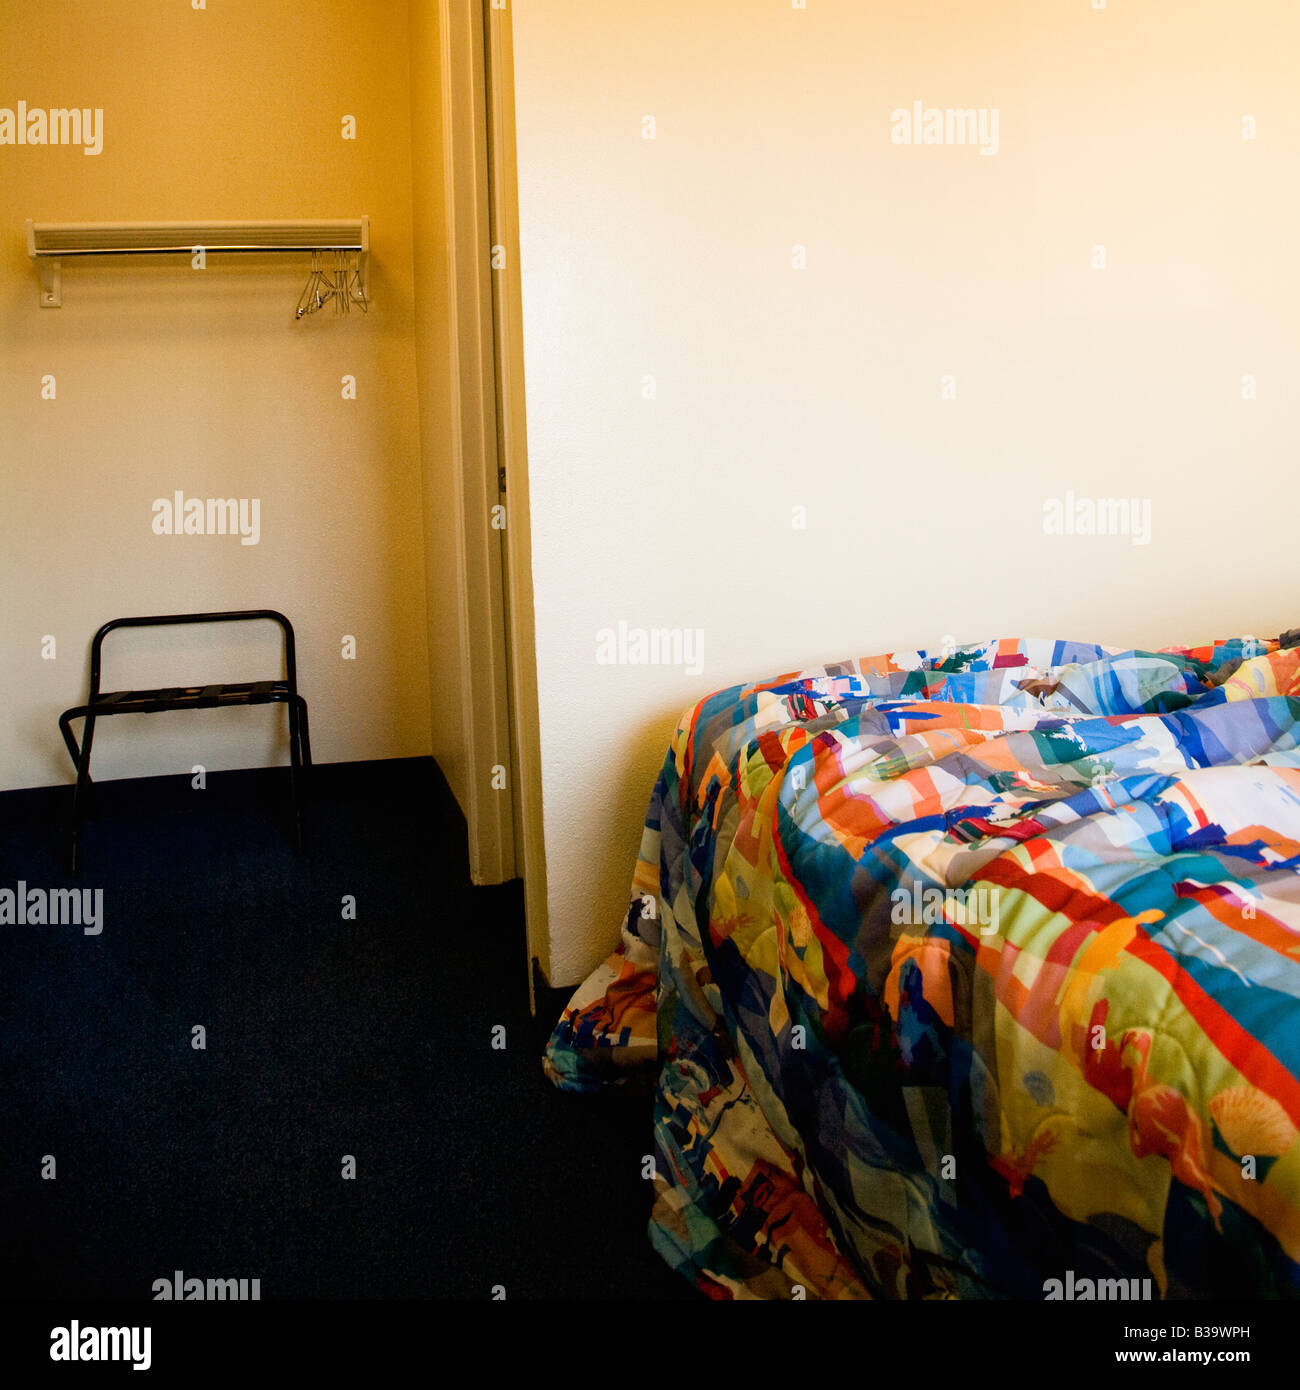 Interior shot of motel room with unmade bed and closet - Stock Image